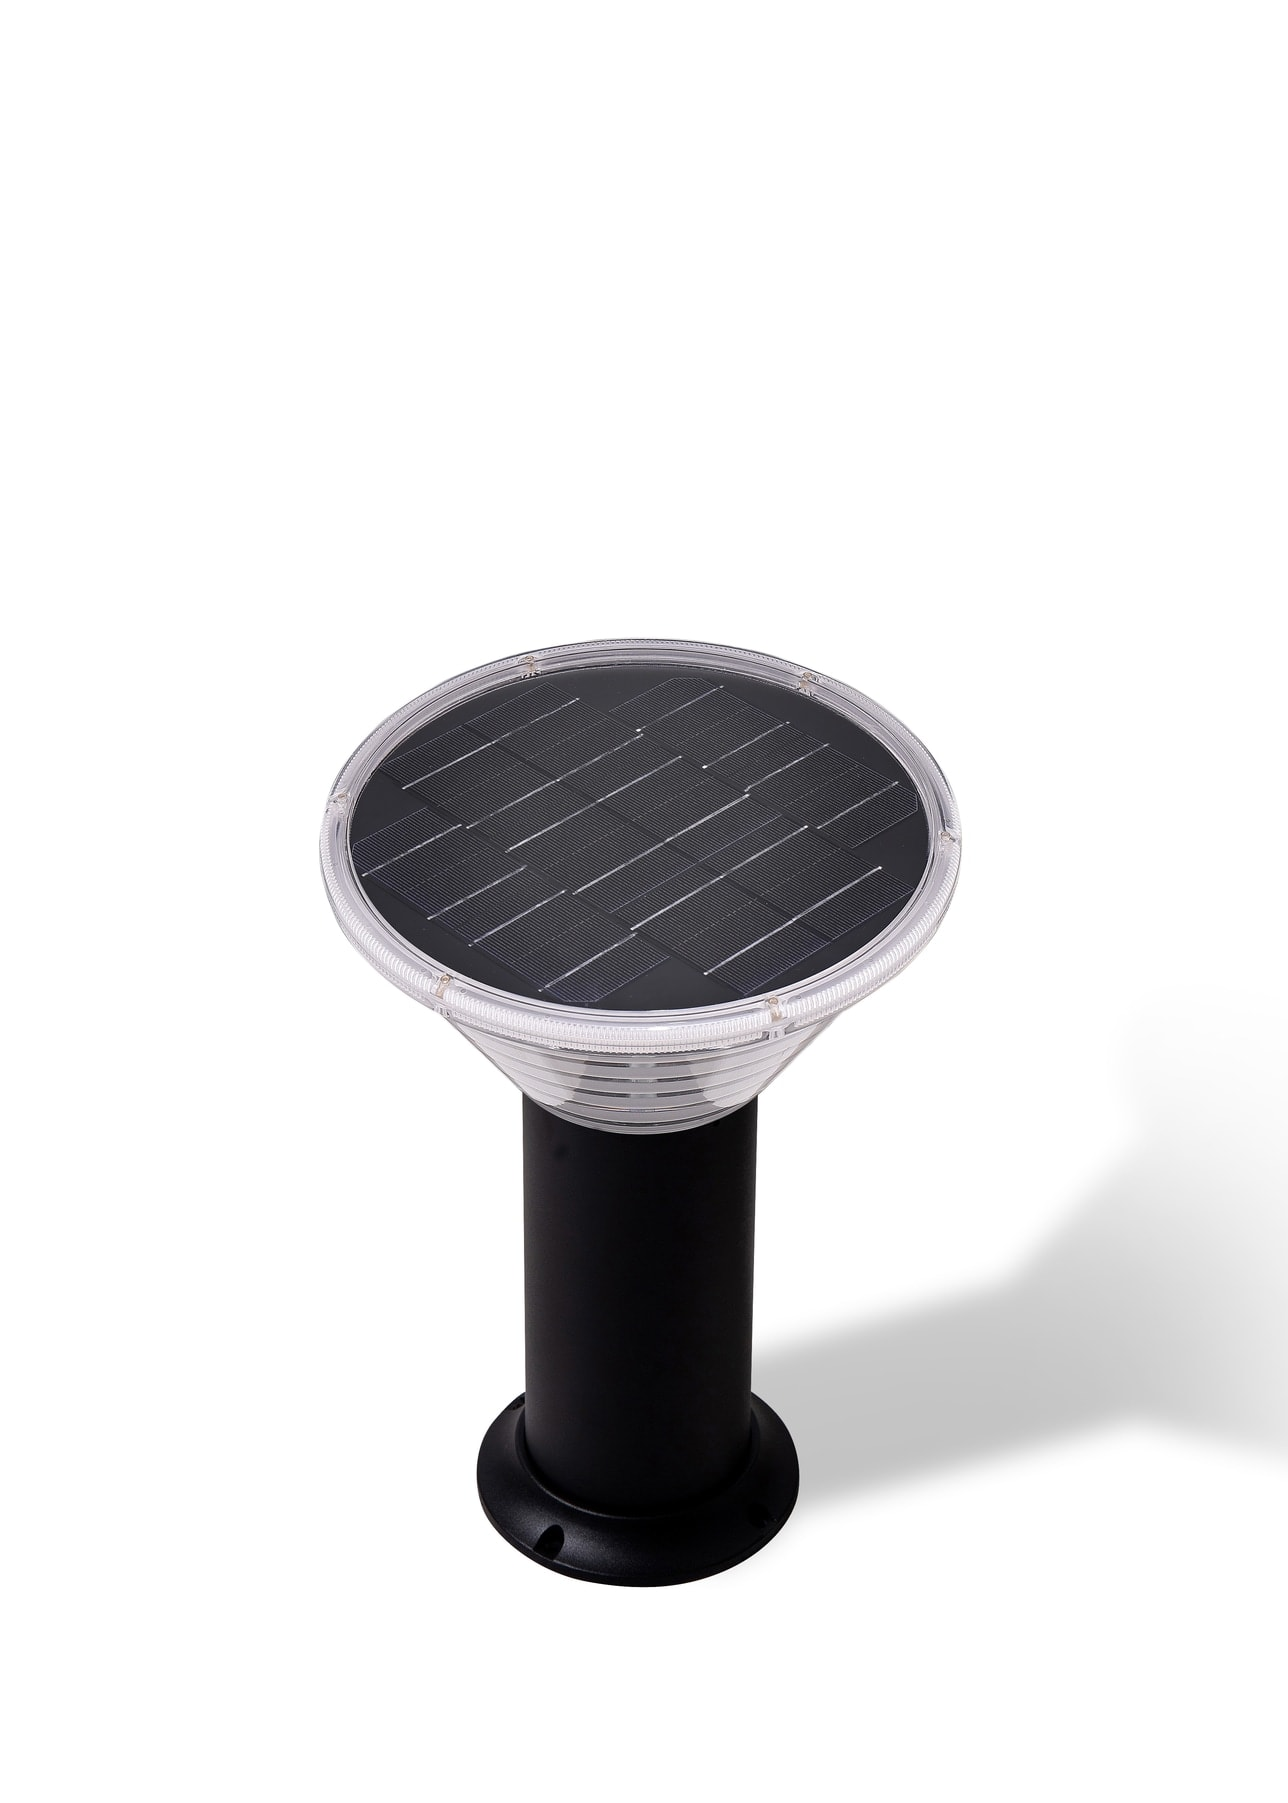 Solar-Power Spark Solar PathLight